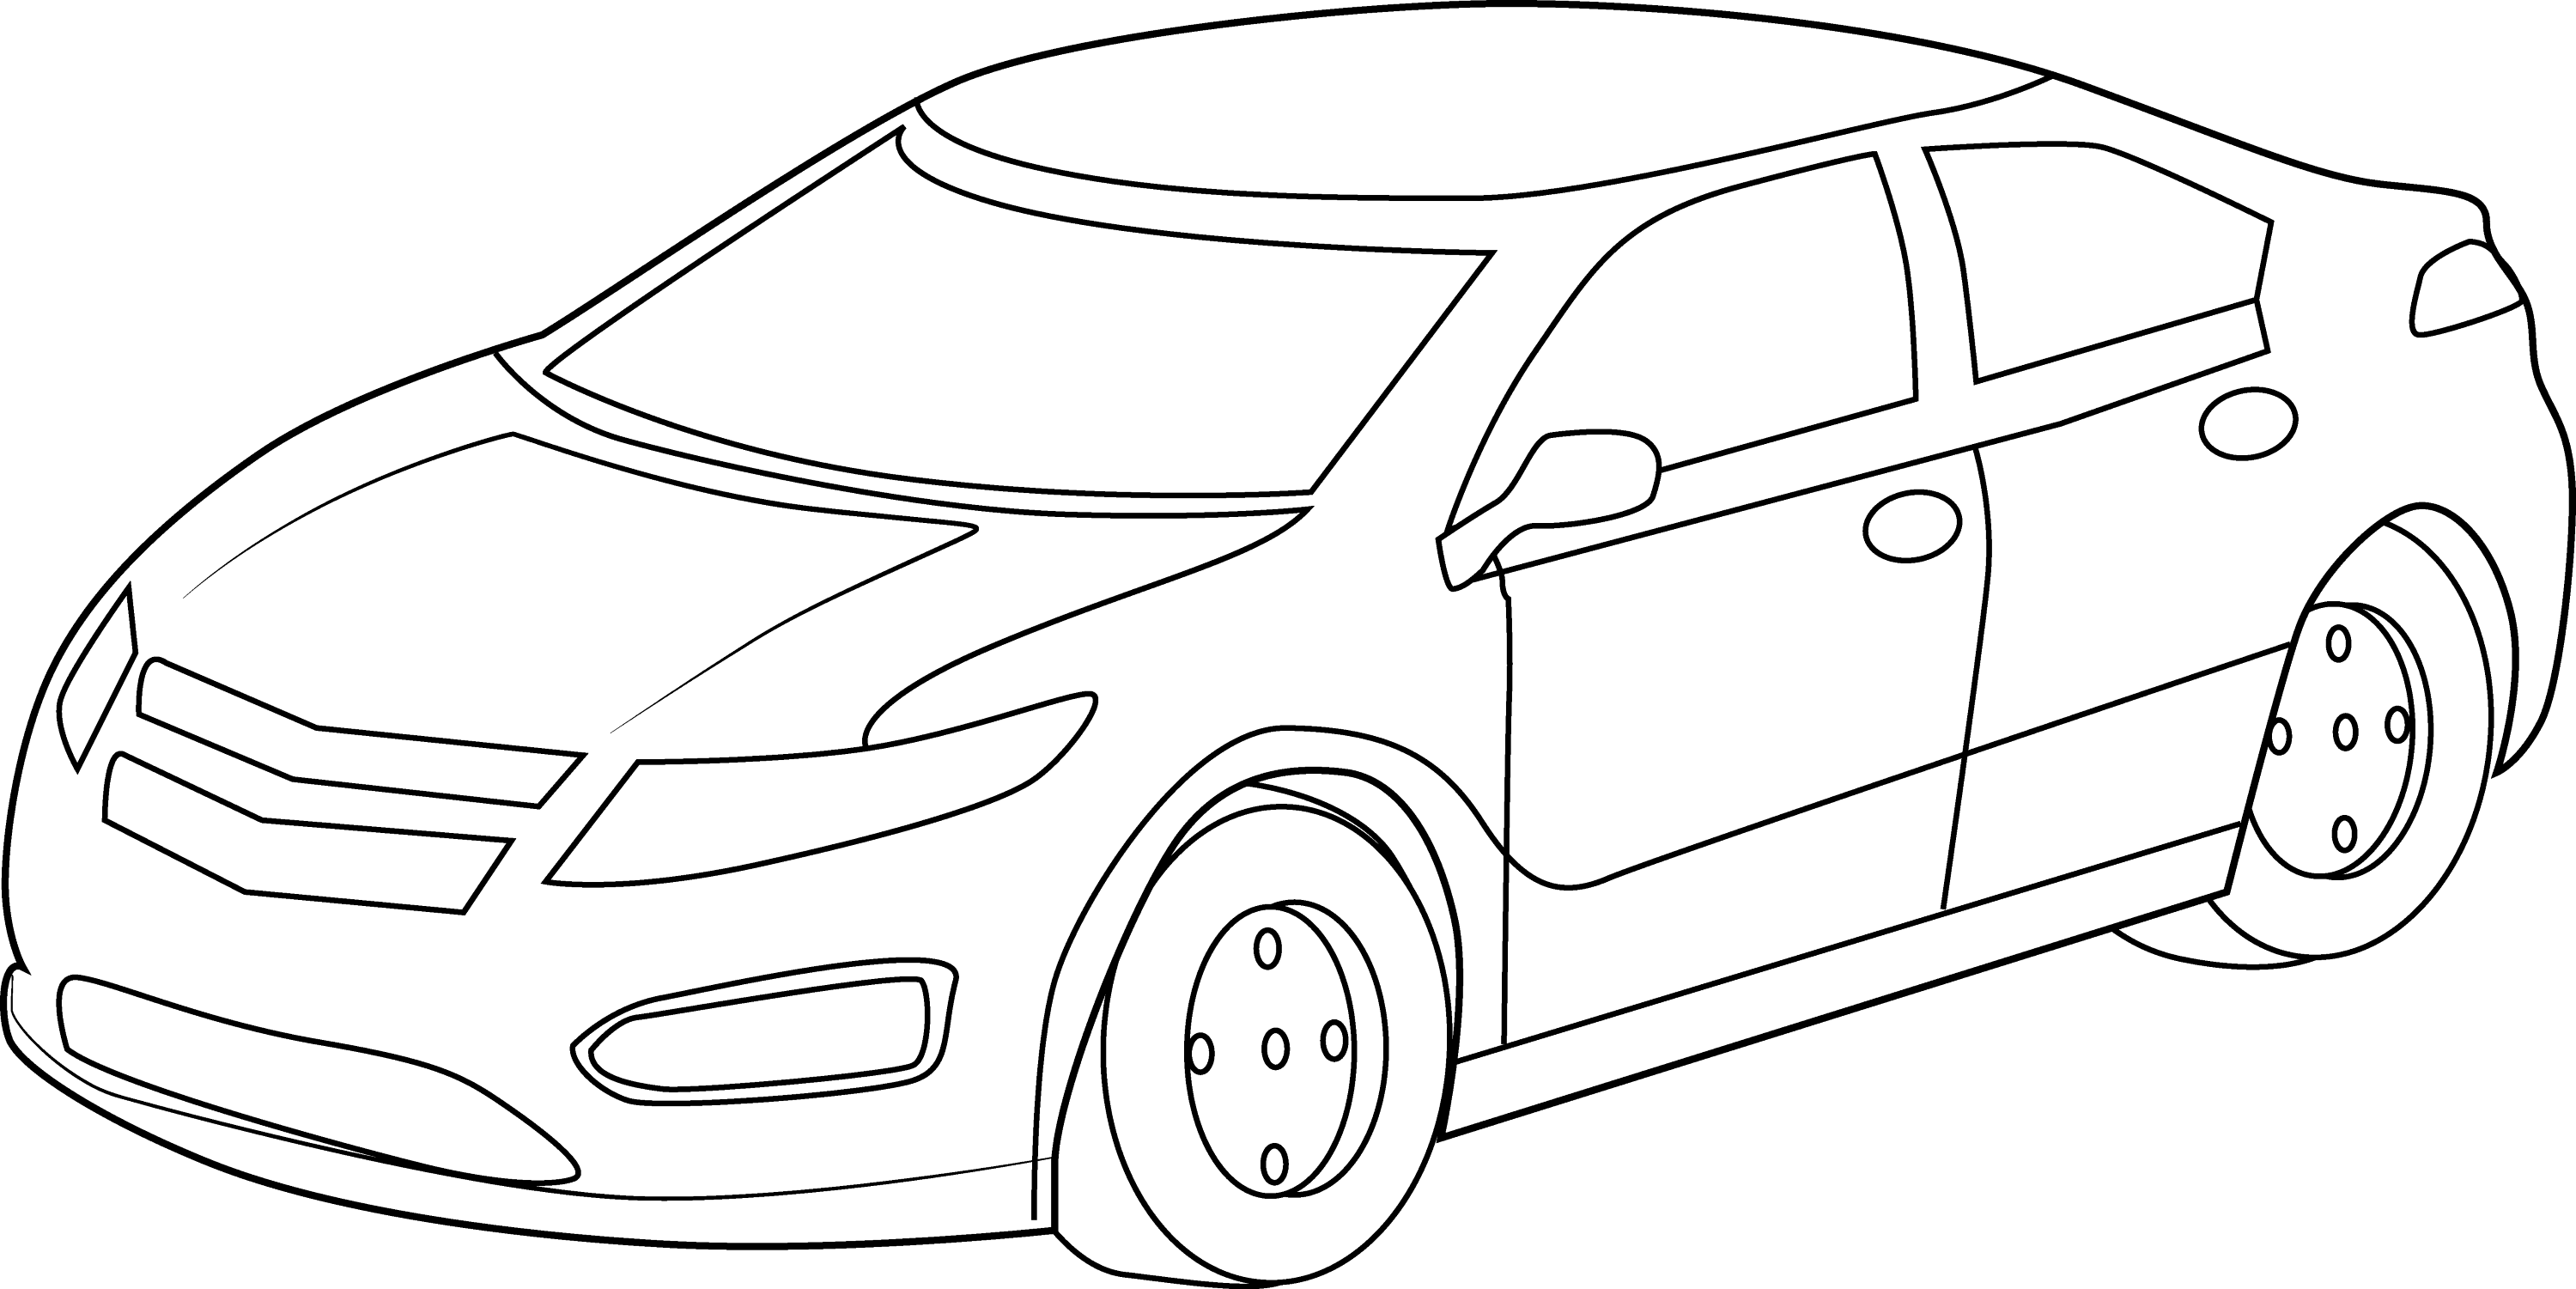 Free Coloring Pages Sports Cars. Cool Sports Car Coloring Page  Free Clip Art